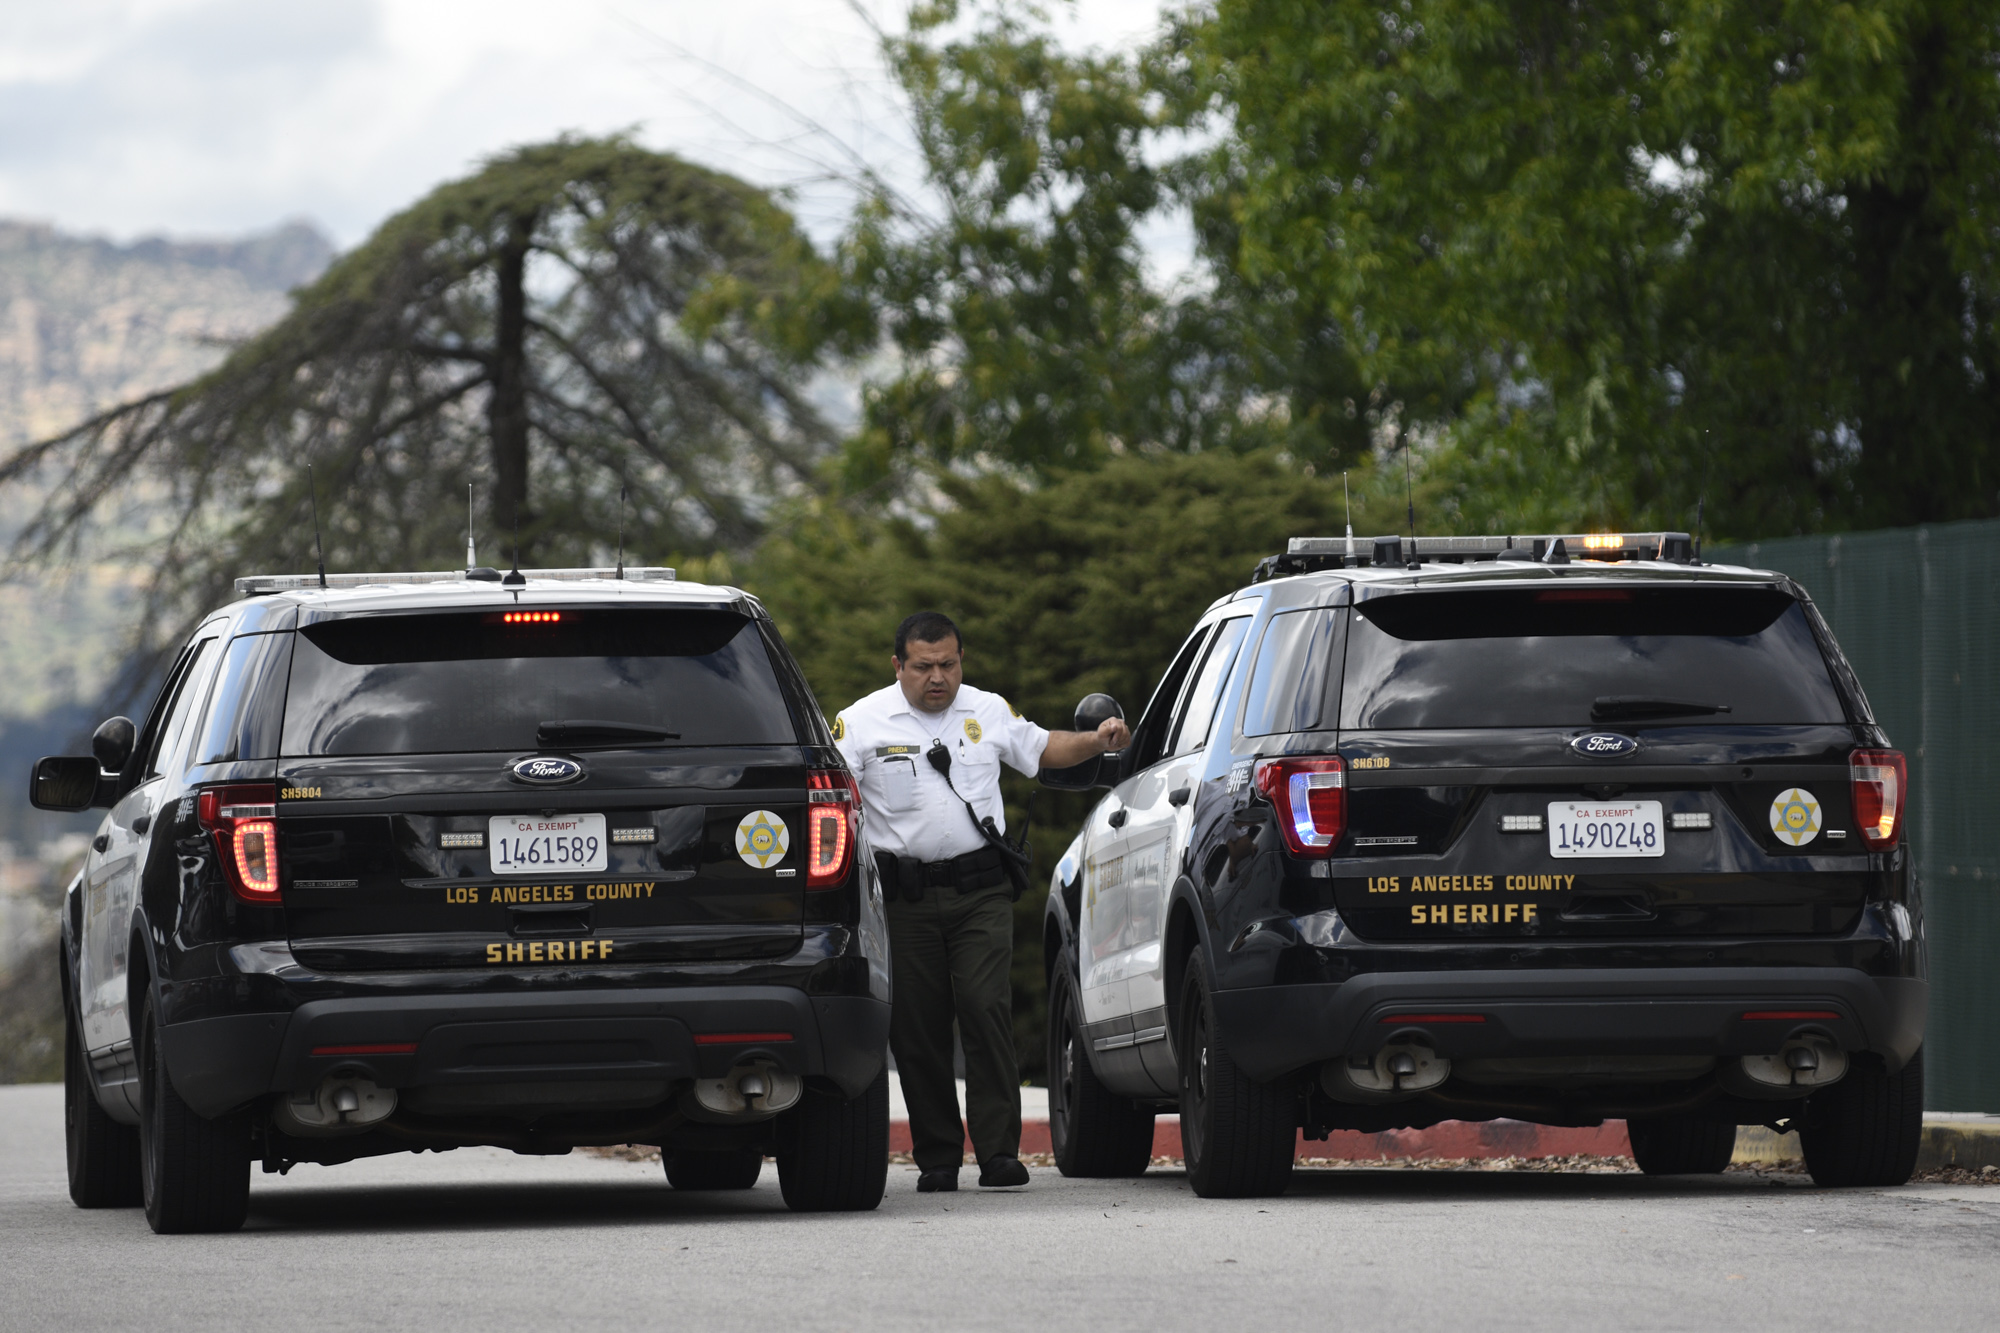 LACCD and LASD going separate ways